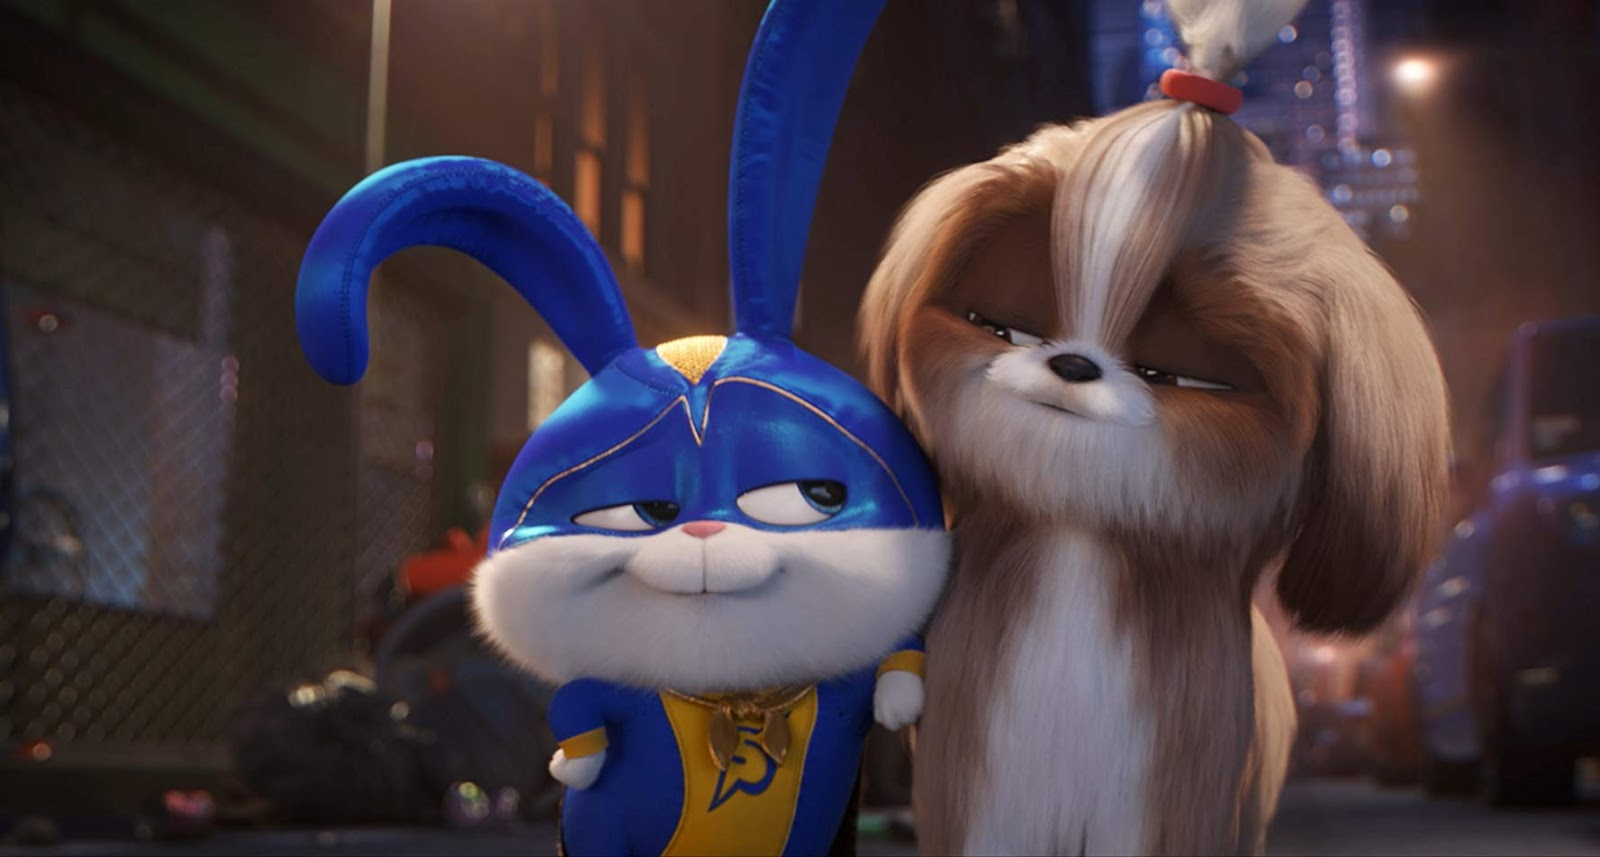 Sinopsis & Pemai Film The Secret Life of Pets 2 (2019) Rilis, Review Dan Trailer Film